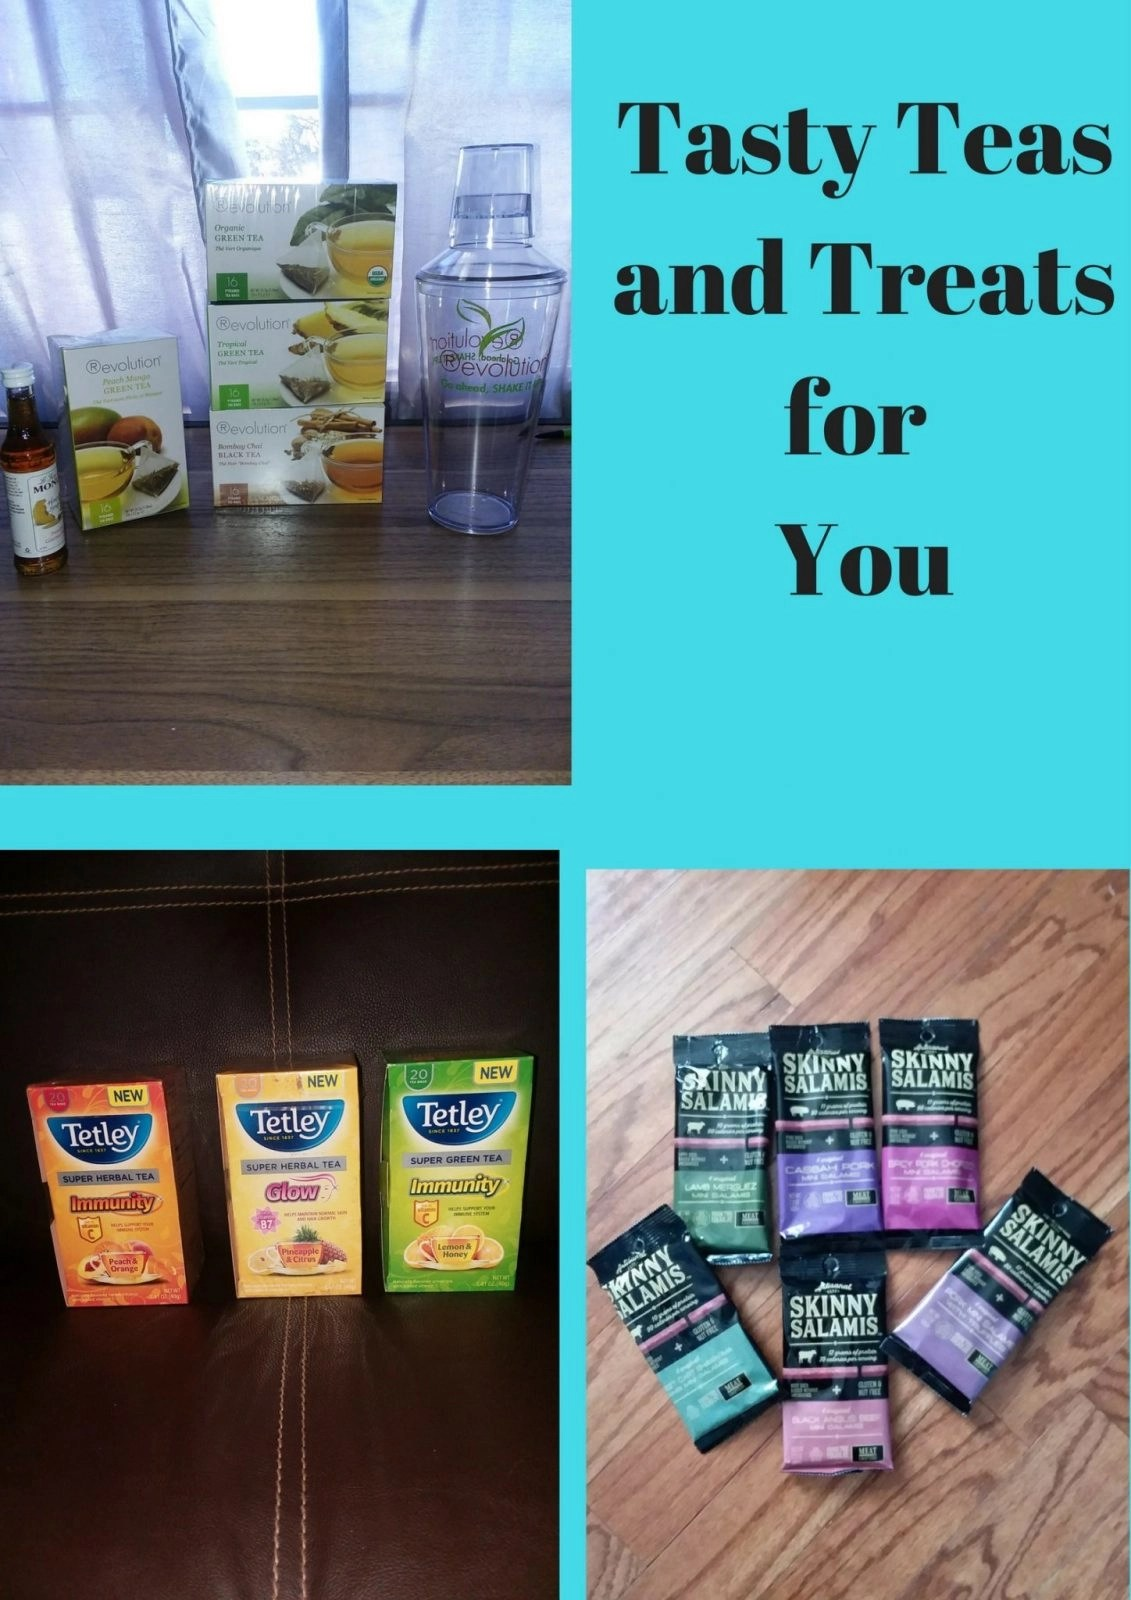 Tasty Teas and Treats for You